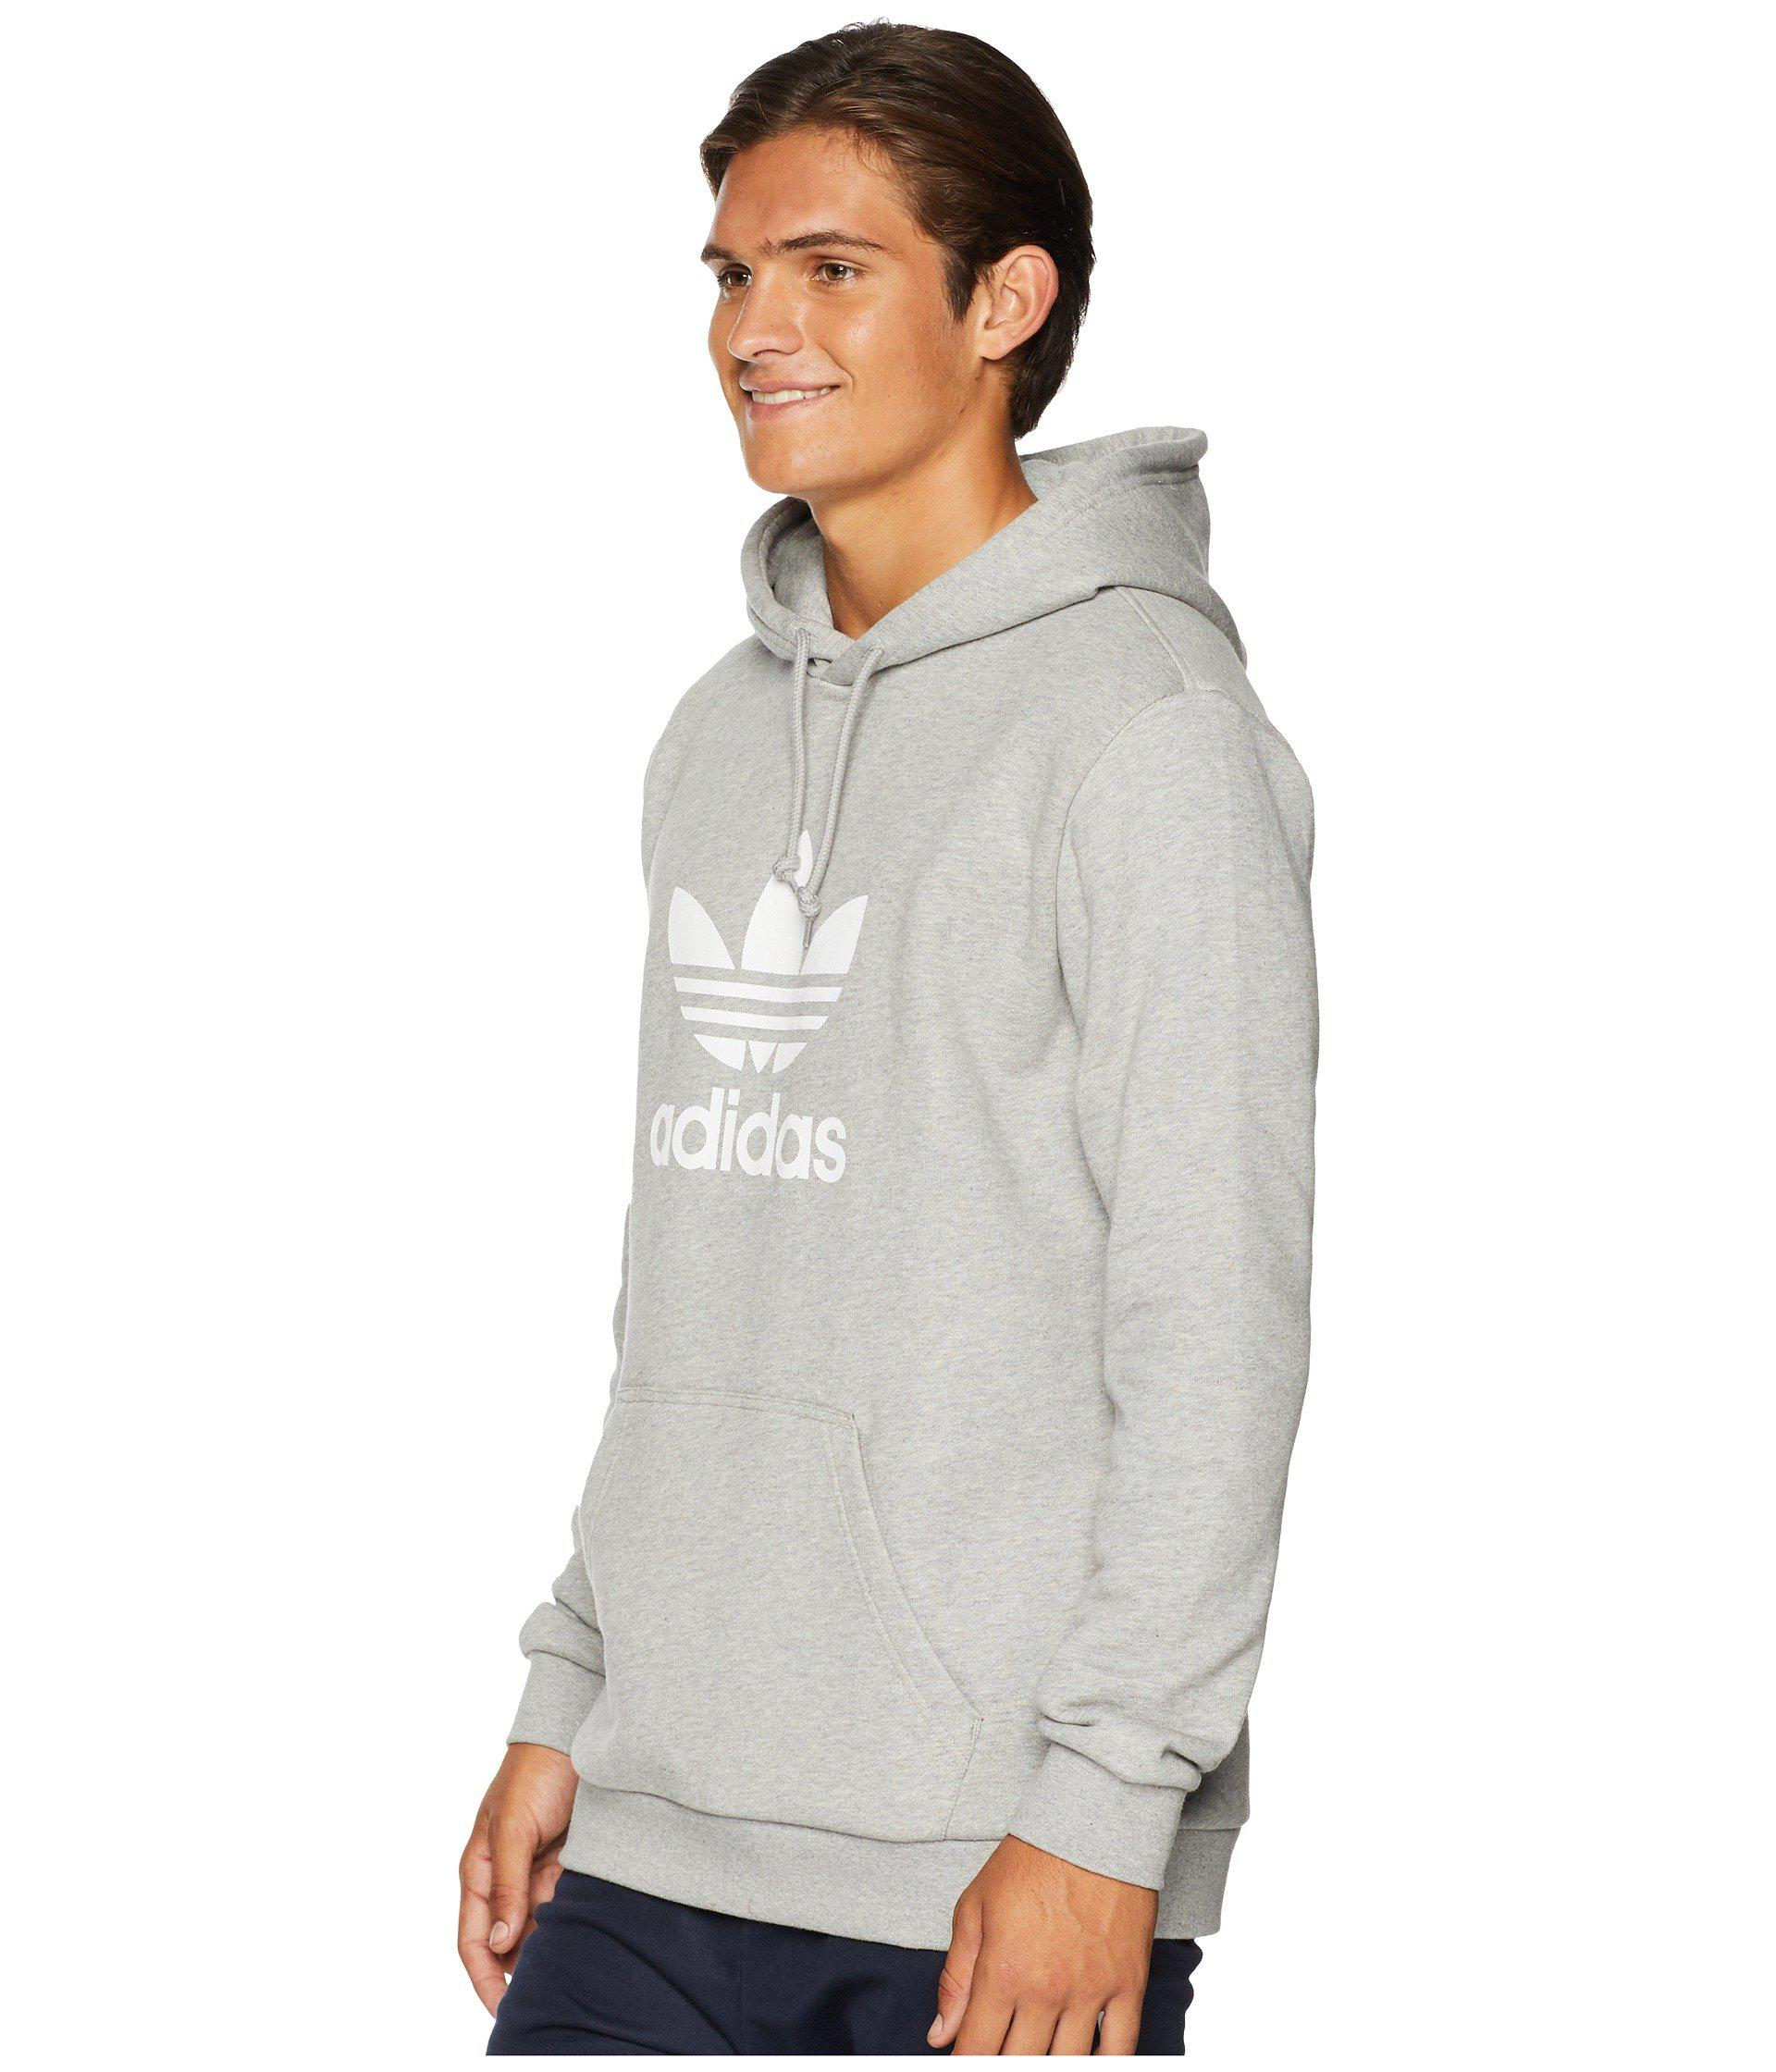 088148d76c8d Lyst - adidas Originals Trefoil Hoodie (medium Grey Heather) Men s  Sweatshirt in Gray for Men - Save 51%